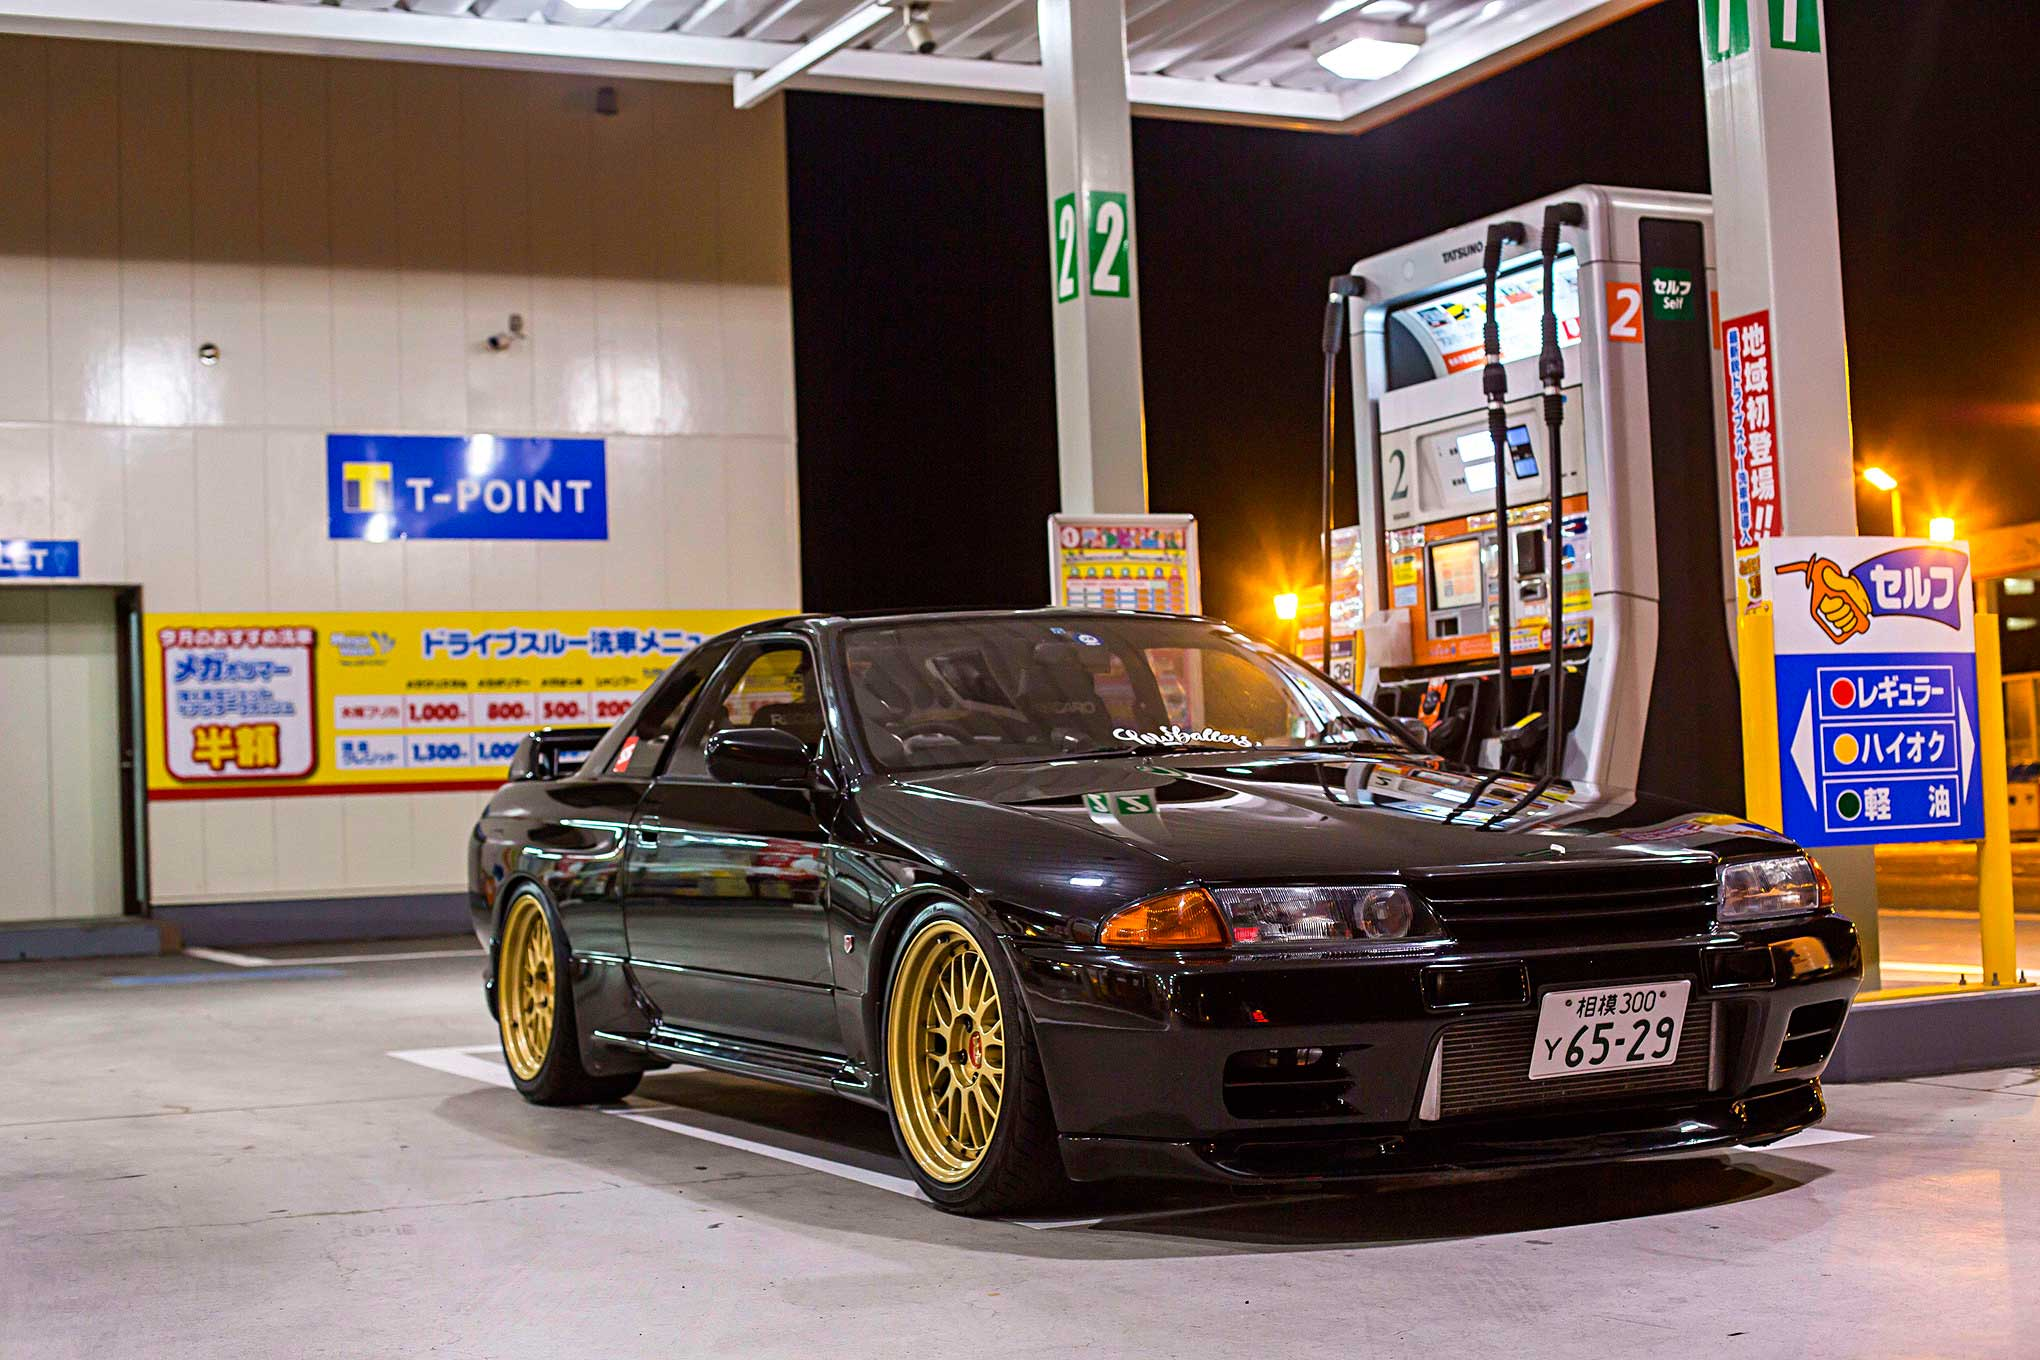 1990 Nissan Skyline GTR R32 - Wangan Warrior